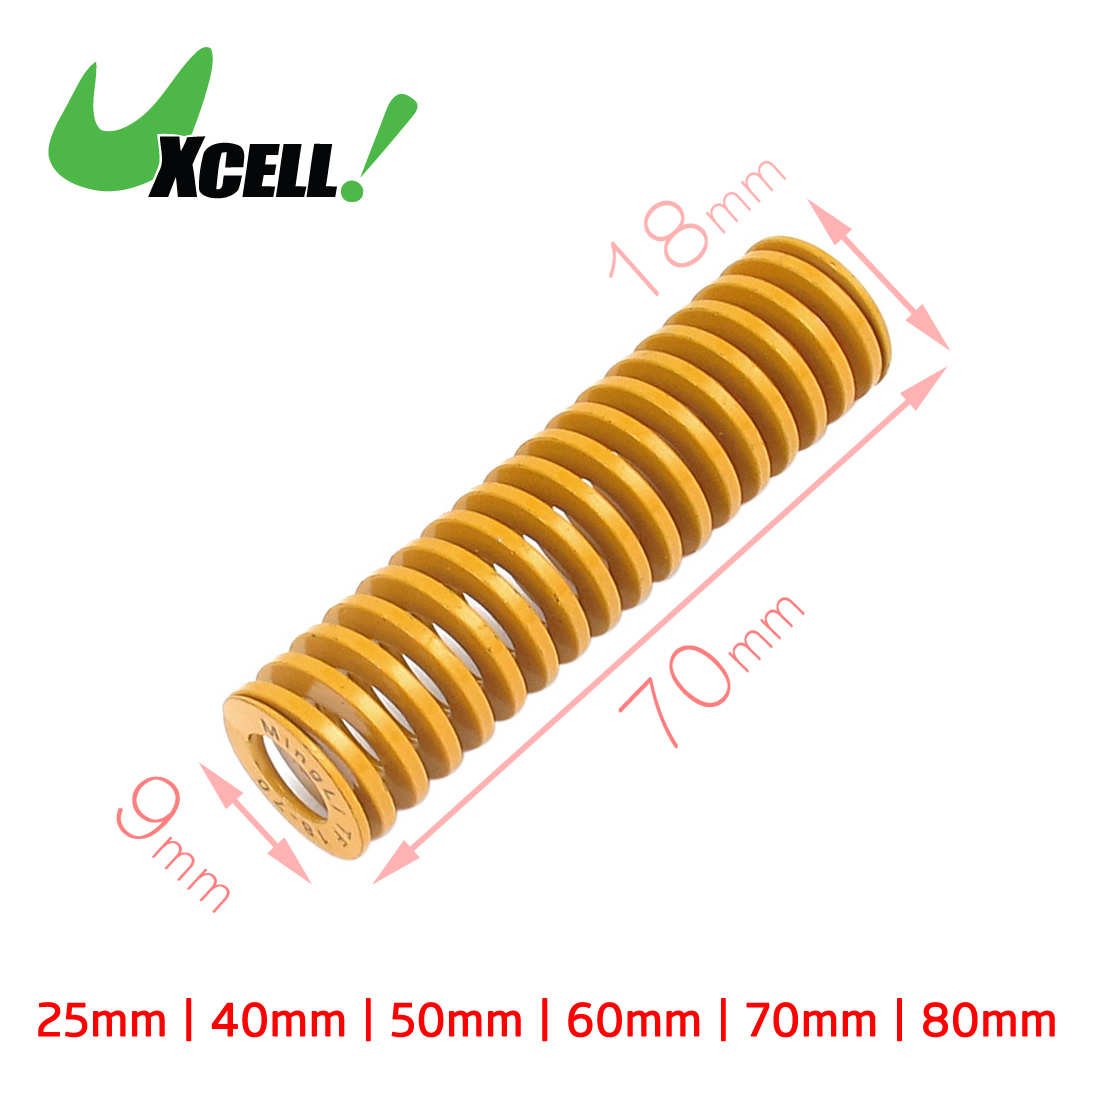 Uxcell Od 18Mm Id 9Mm Chromium Alloy Steel Mould Die Spring Yellow Long . | 25mm | 40mm | 50mm | 60mm | 70mm | 80mm | 90mm 9mm tip straight injection mould ejector pin thimble punching 300mm long 5pcs